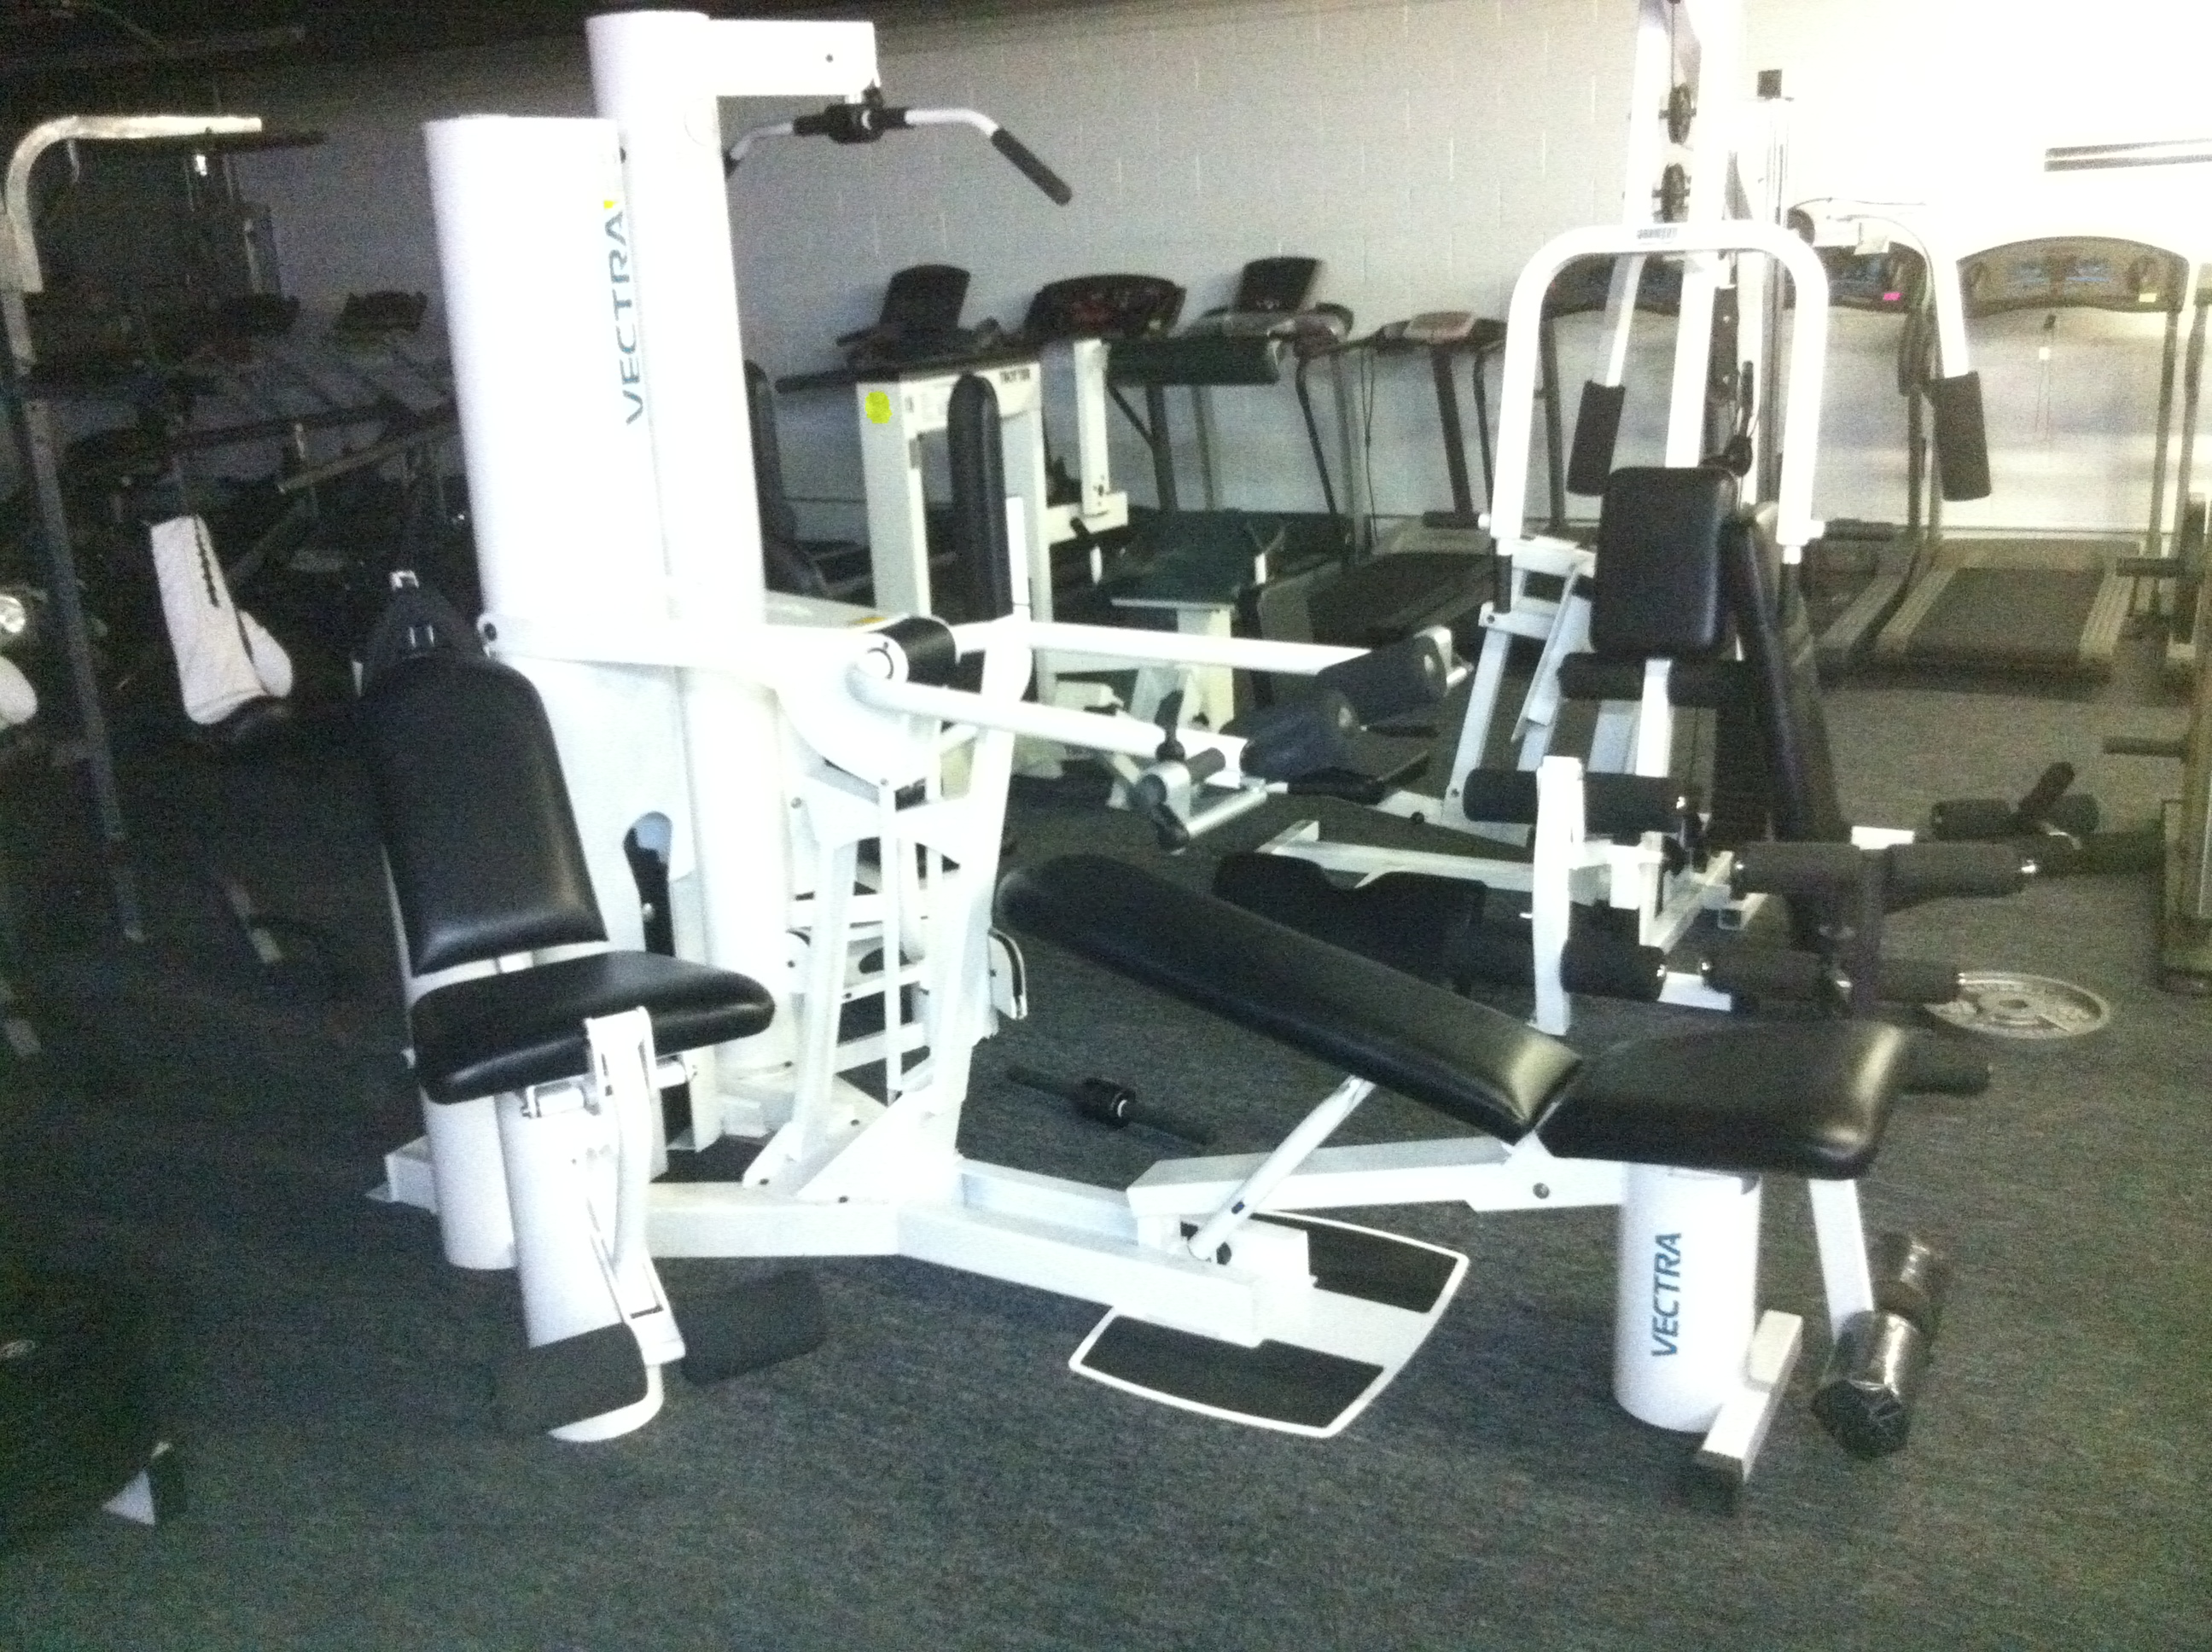 Refurbished vectra home gym ultimate fitness equipment